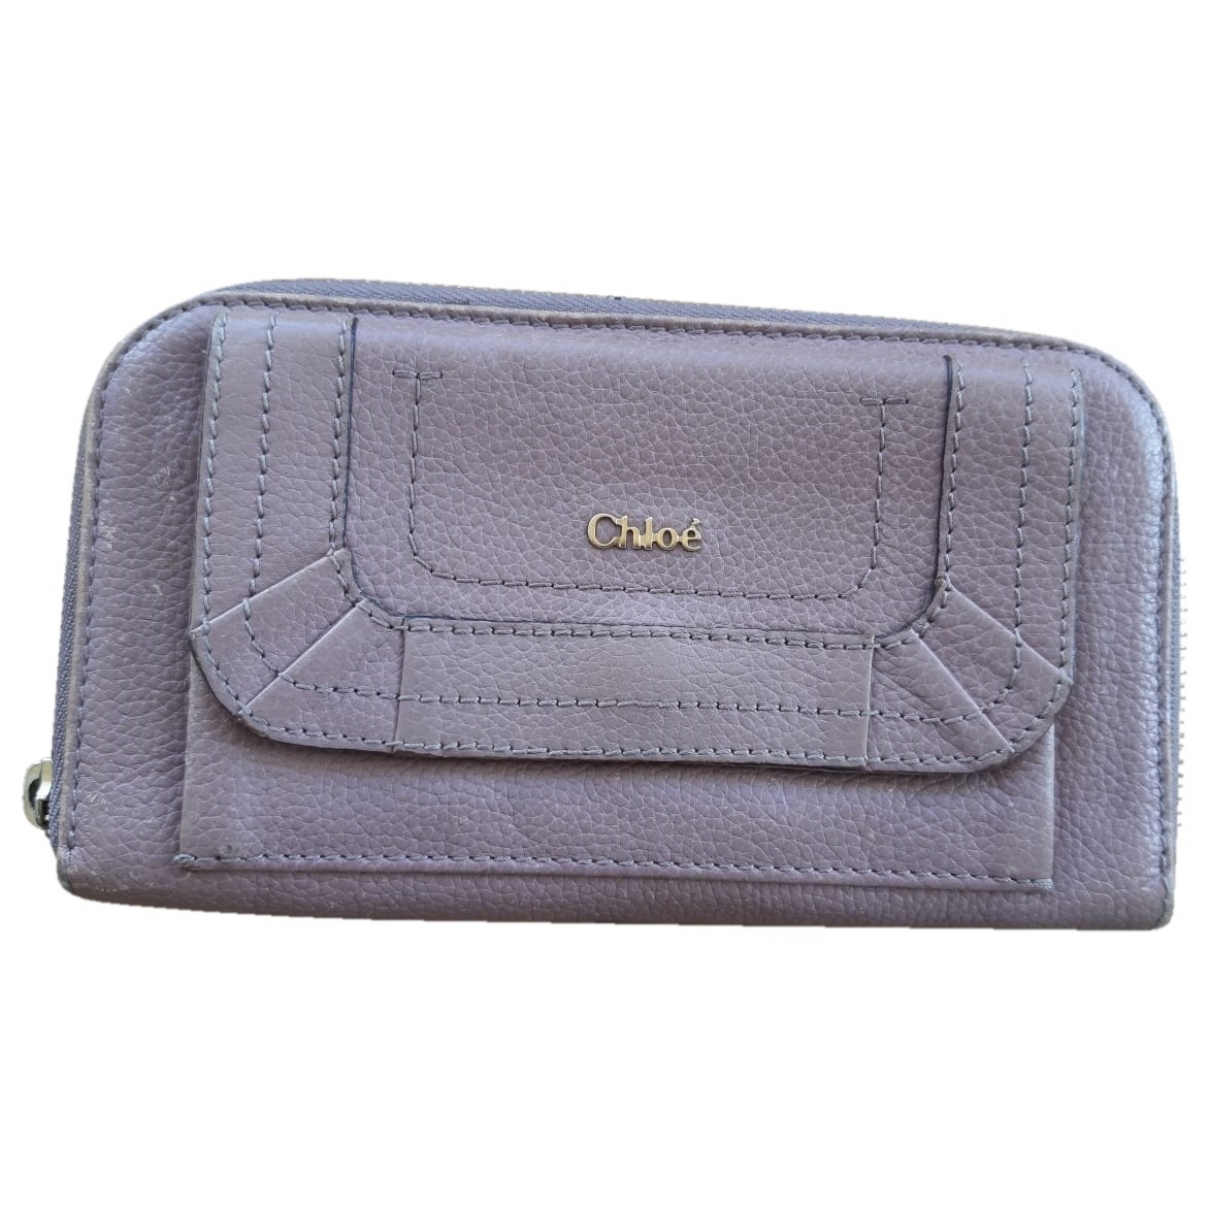 Chloé \N Pink Leather wallet for Women \N